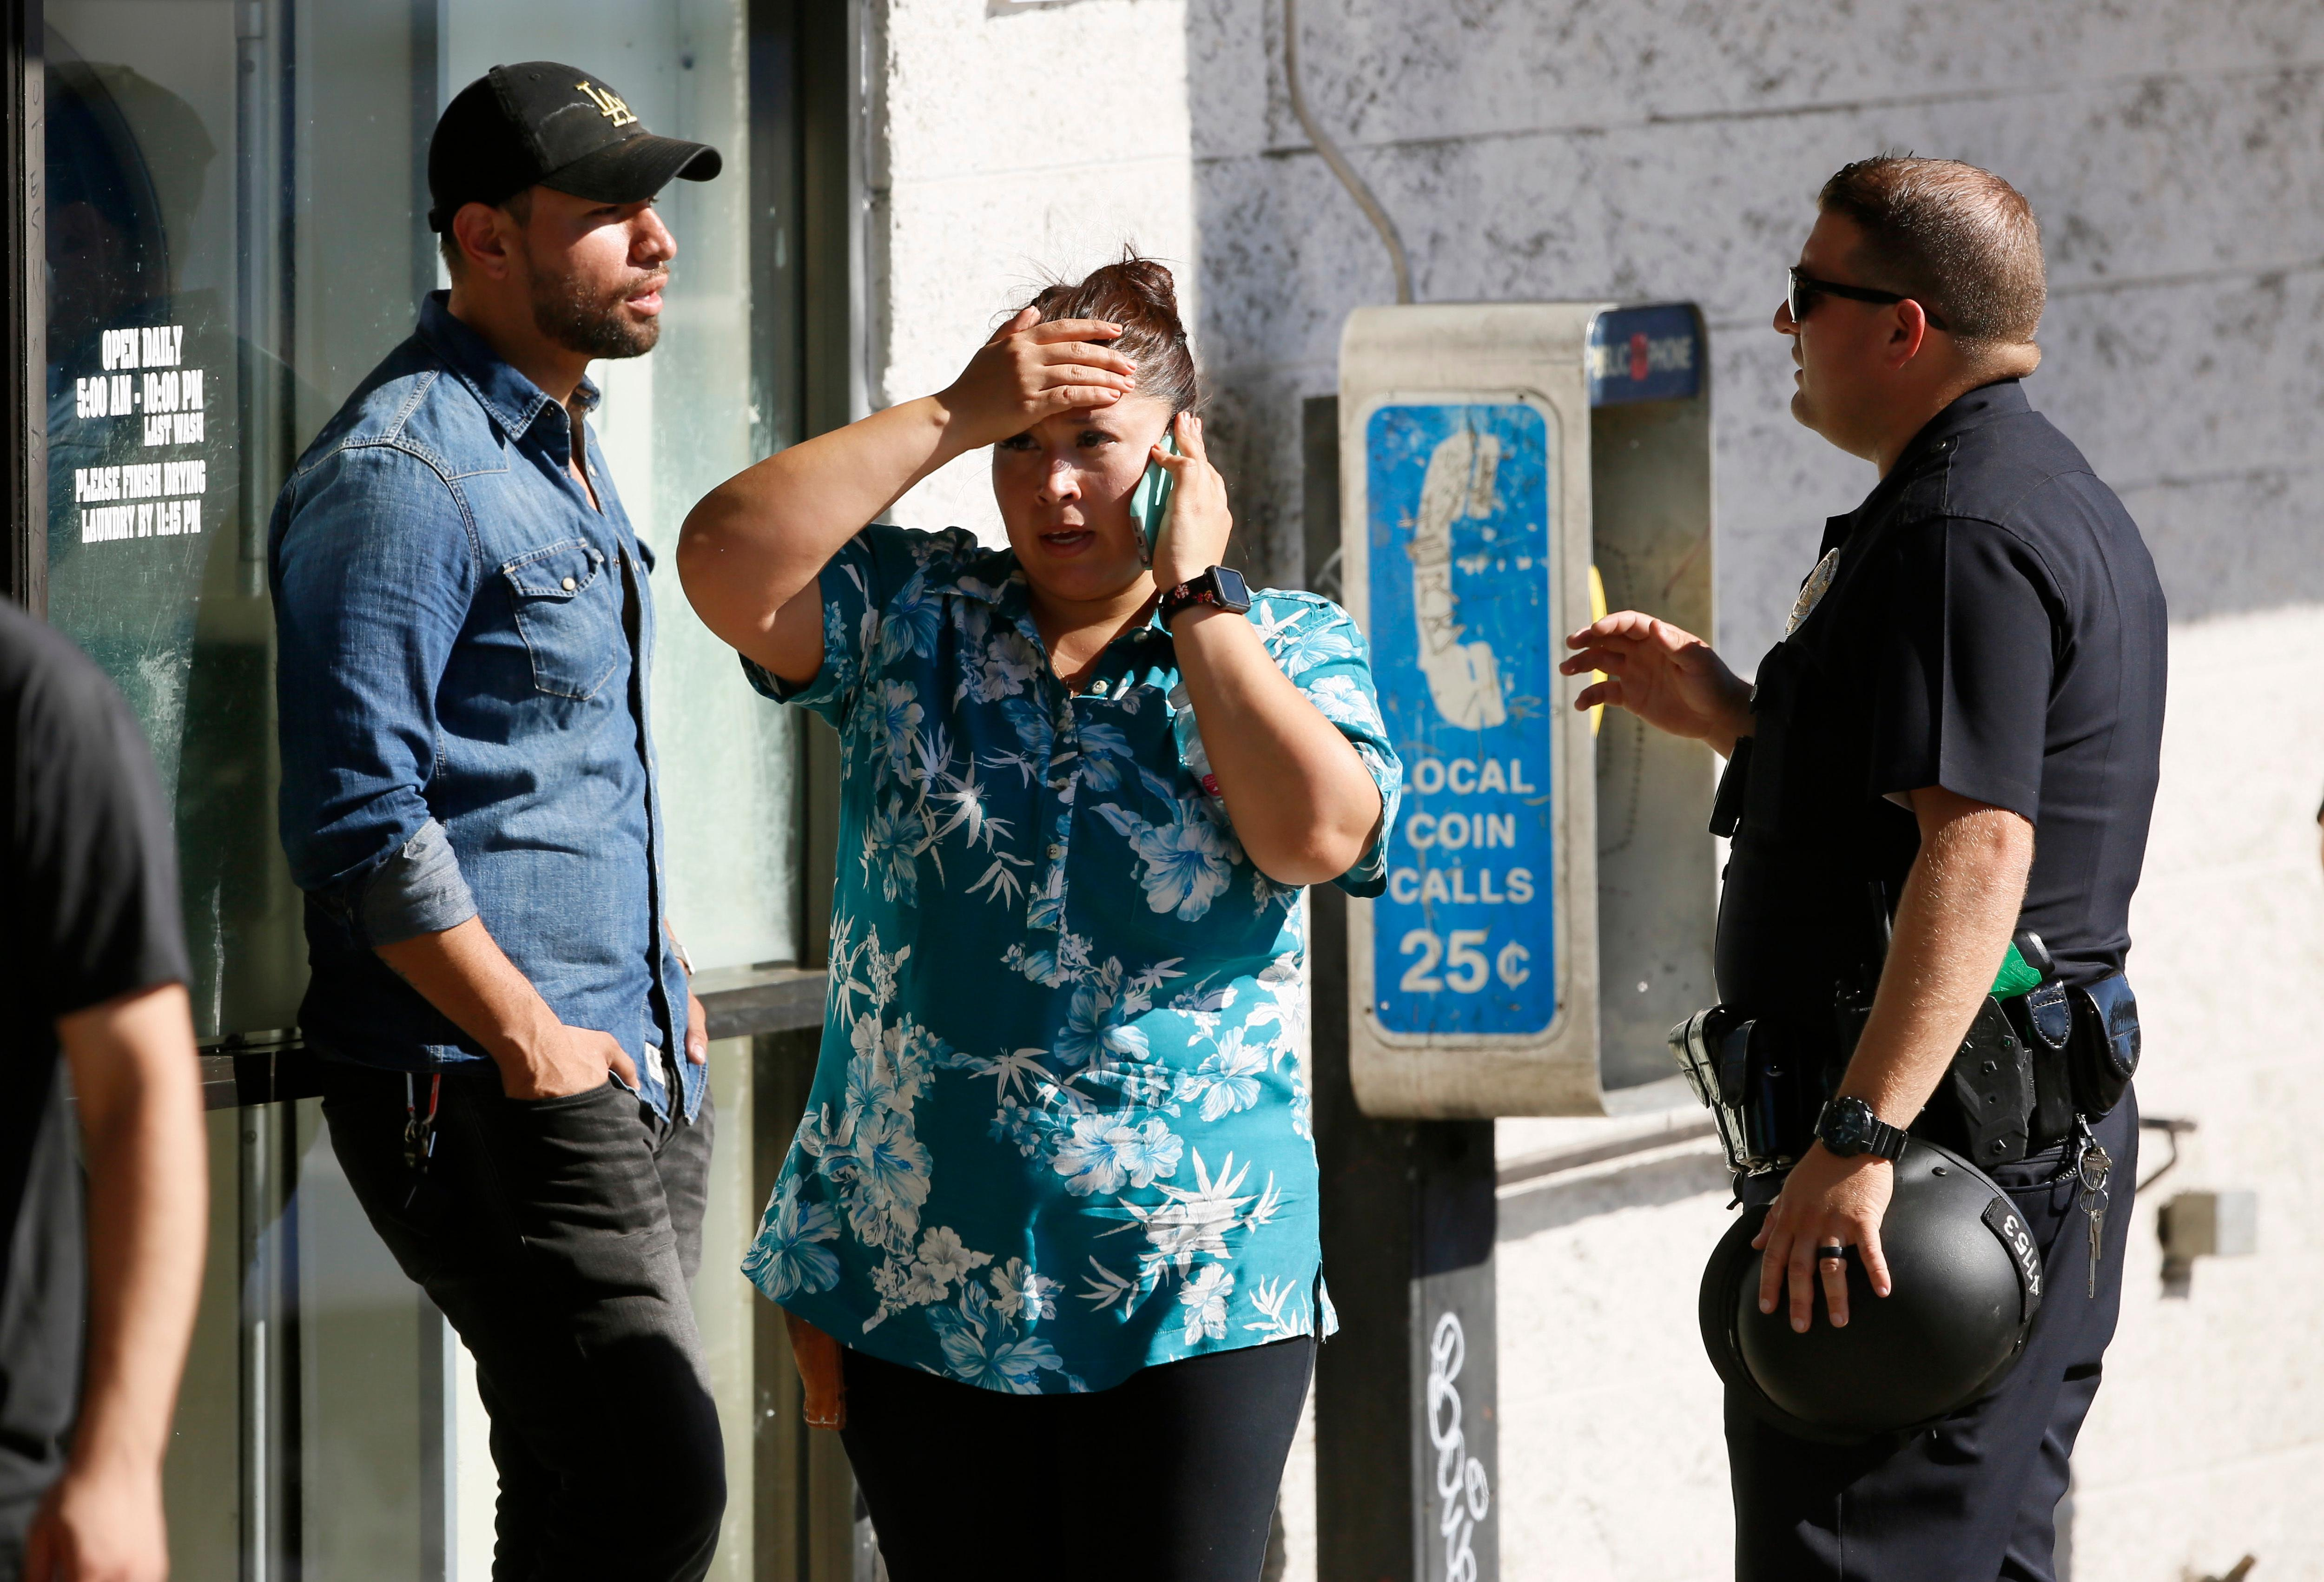 An unidentified Trader Joe's supermarket employee, center, talks on her phone as Los Angeles Police evacuate a group of witnesses after a gunman barricaded himself inside the store in Los Angeles Saturday, July 21, 2018. Police believe a man involved in a standoff at the Los Angeles supermarket shot his grandmother and girlfriend and then fired at officers during a pursuit before he crashed into a utility pole outside the supermarket and ran inside the store. About three hours after he took hostages in the store, the suspect surrendered. (AP Photo/Damian Dovarganes)